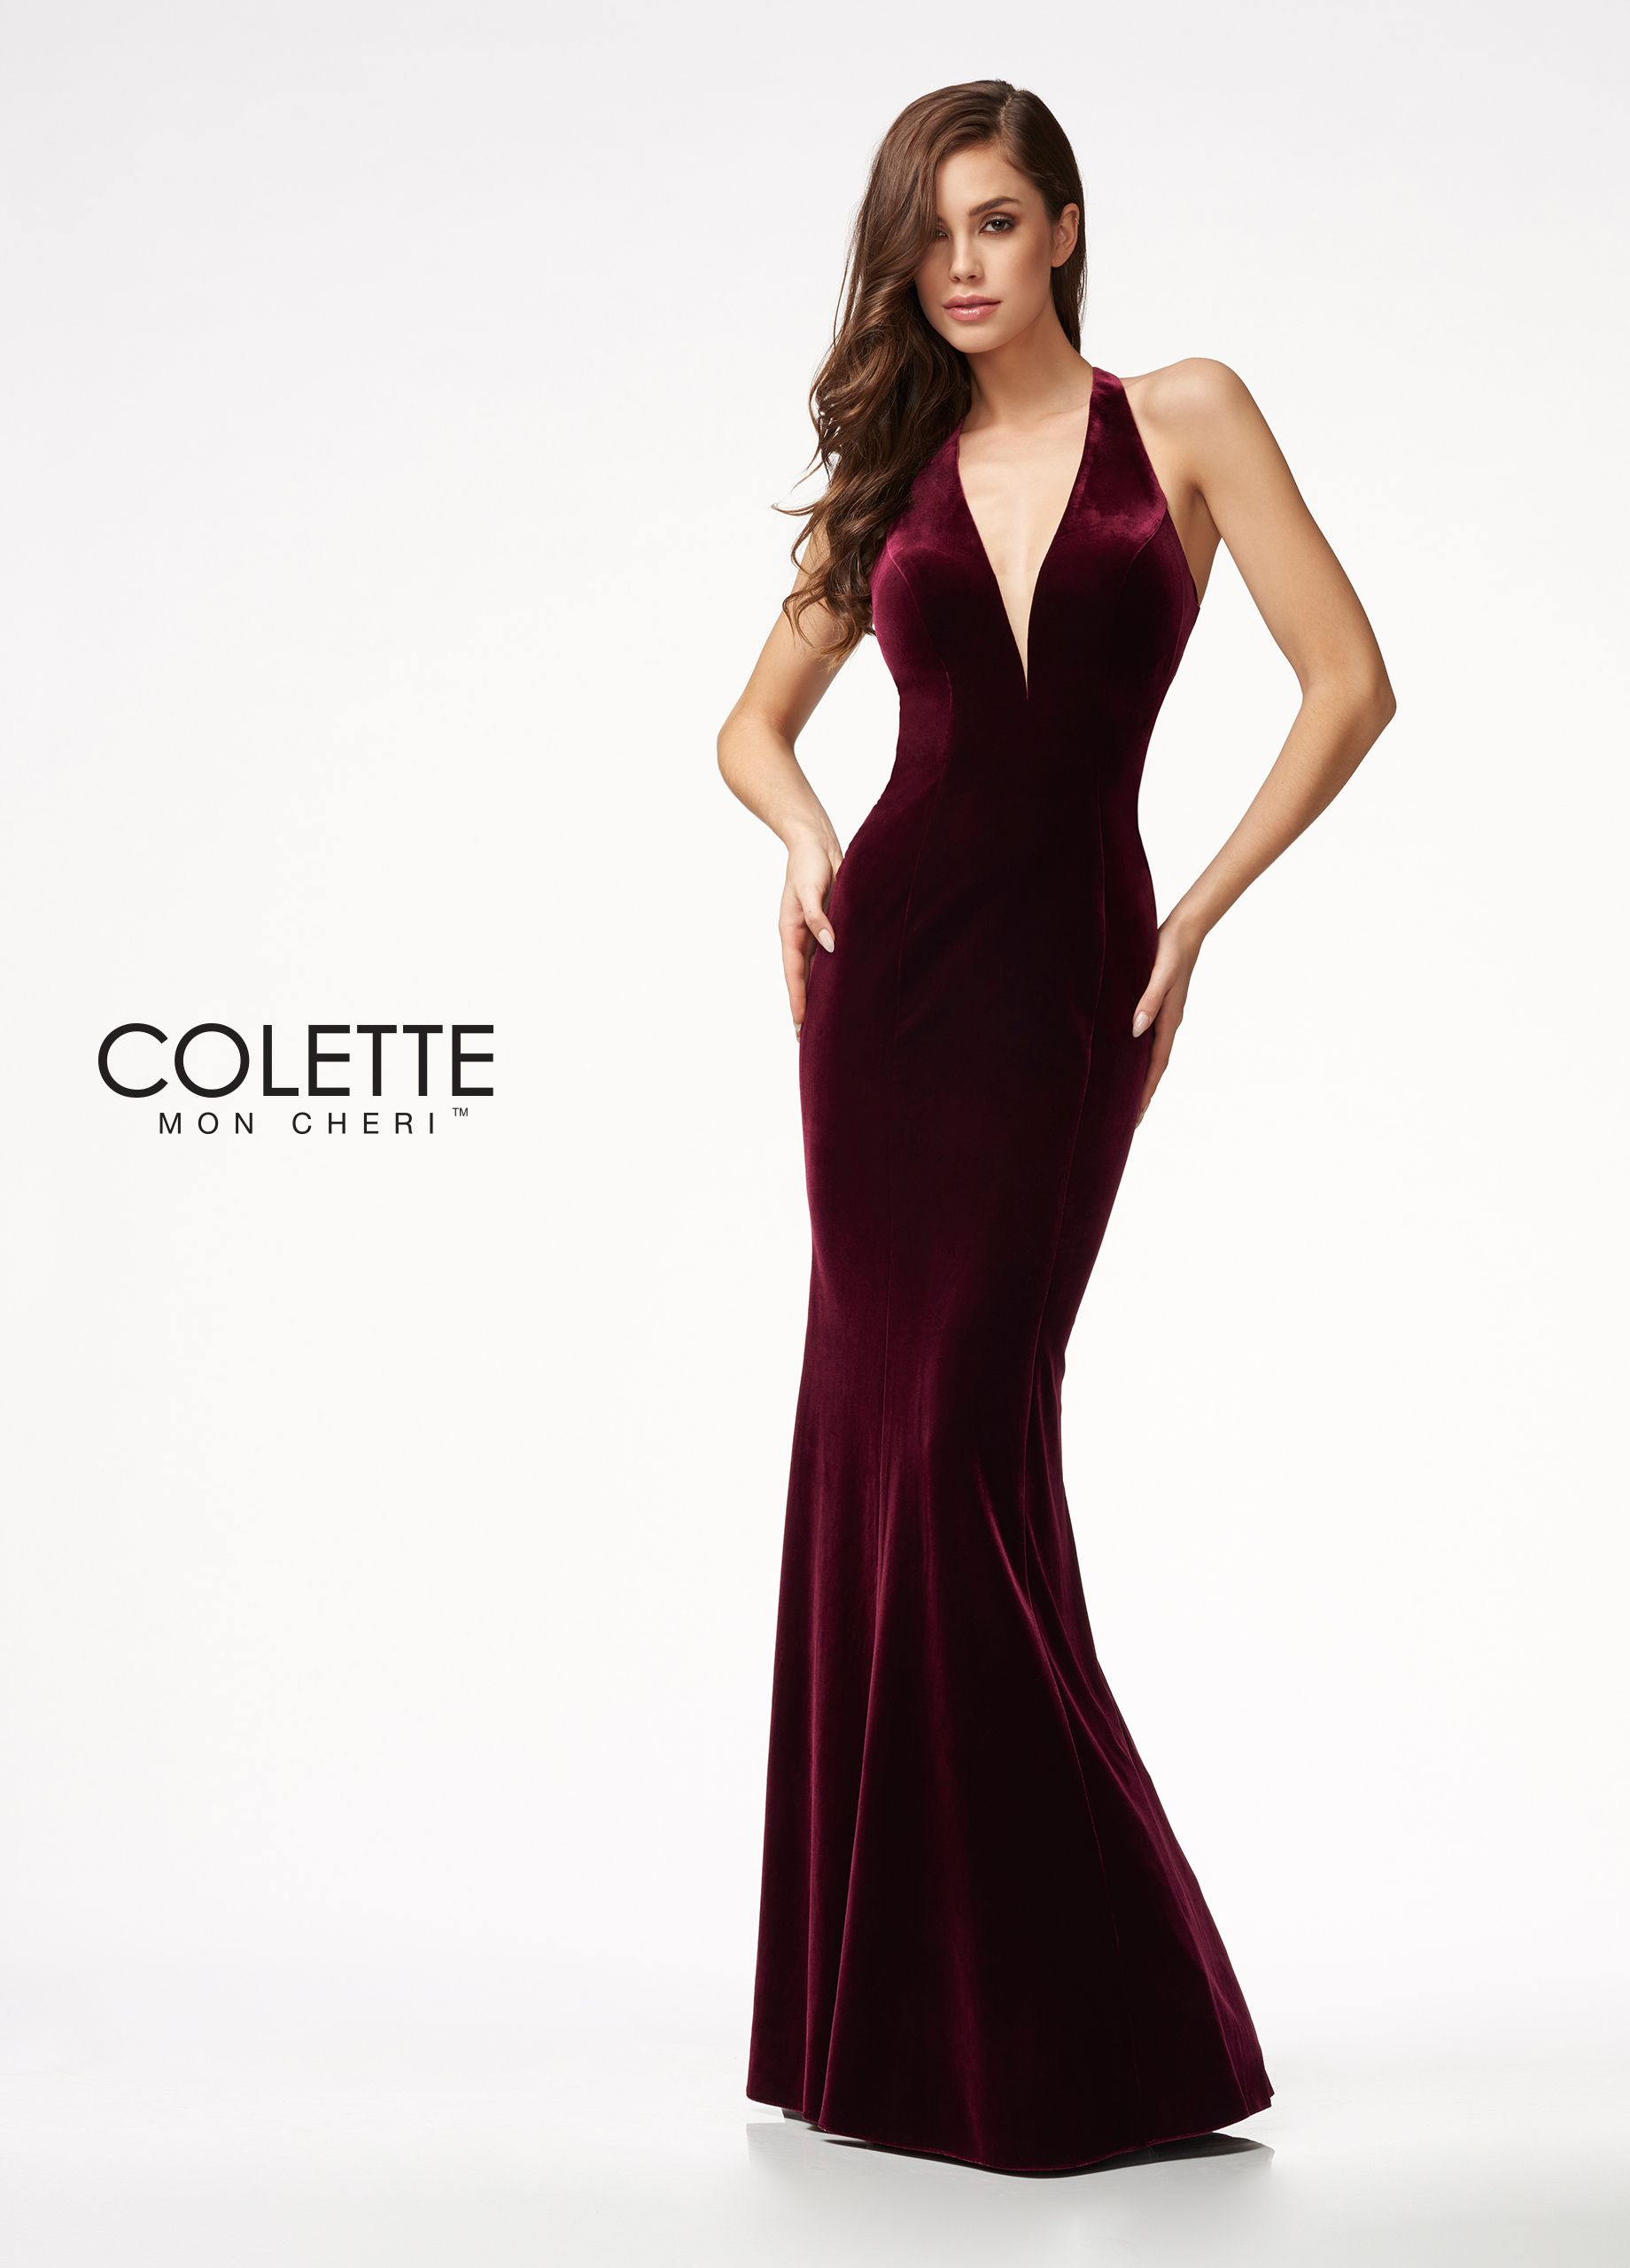 c06a8990f23d8e ... wedding gowns and prom dresses. Colette for Mon Cheri CL21705 - Velvet  Deep V-neckline Column silhouette with fluted skirt Fitted bodice Open back